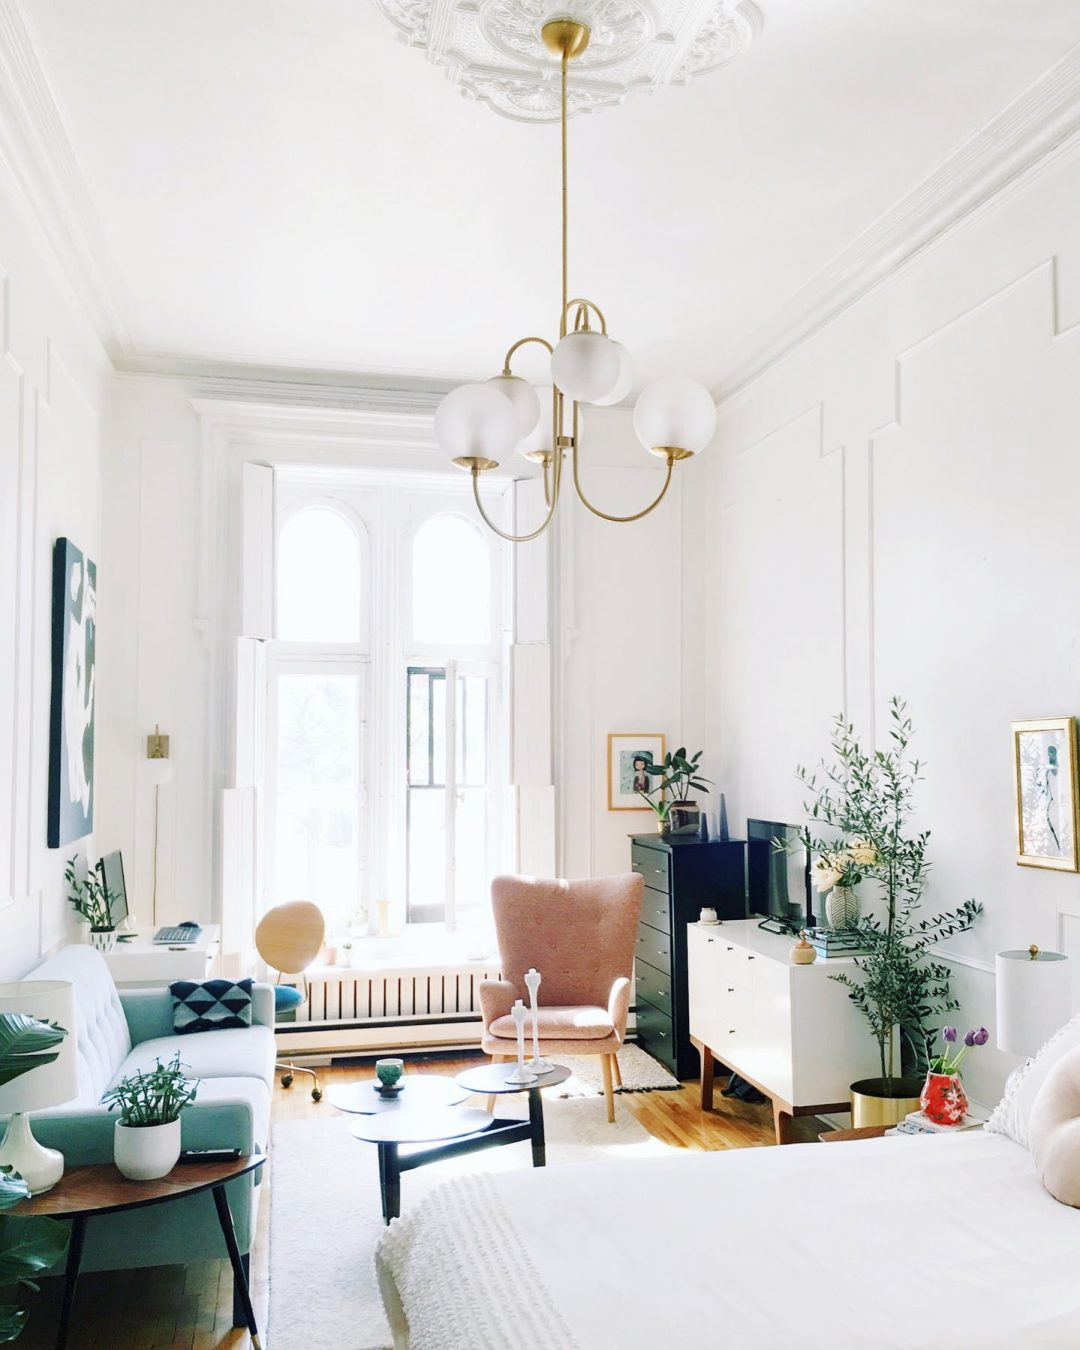 14 Minimalist Spaces to Inspire Your Interior Decor.